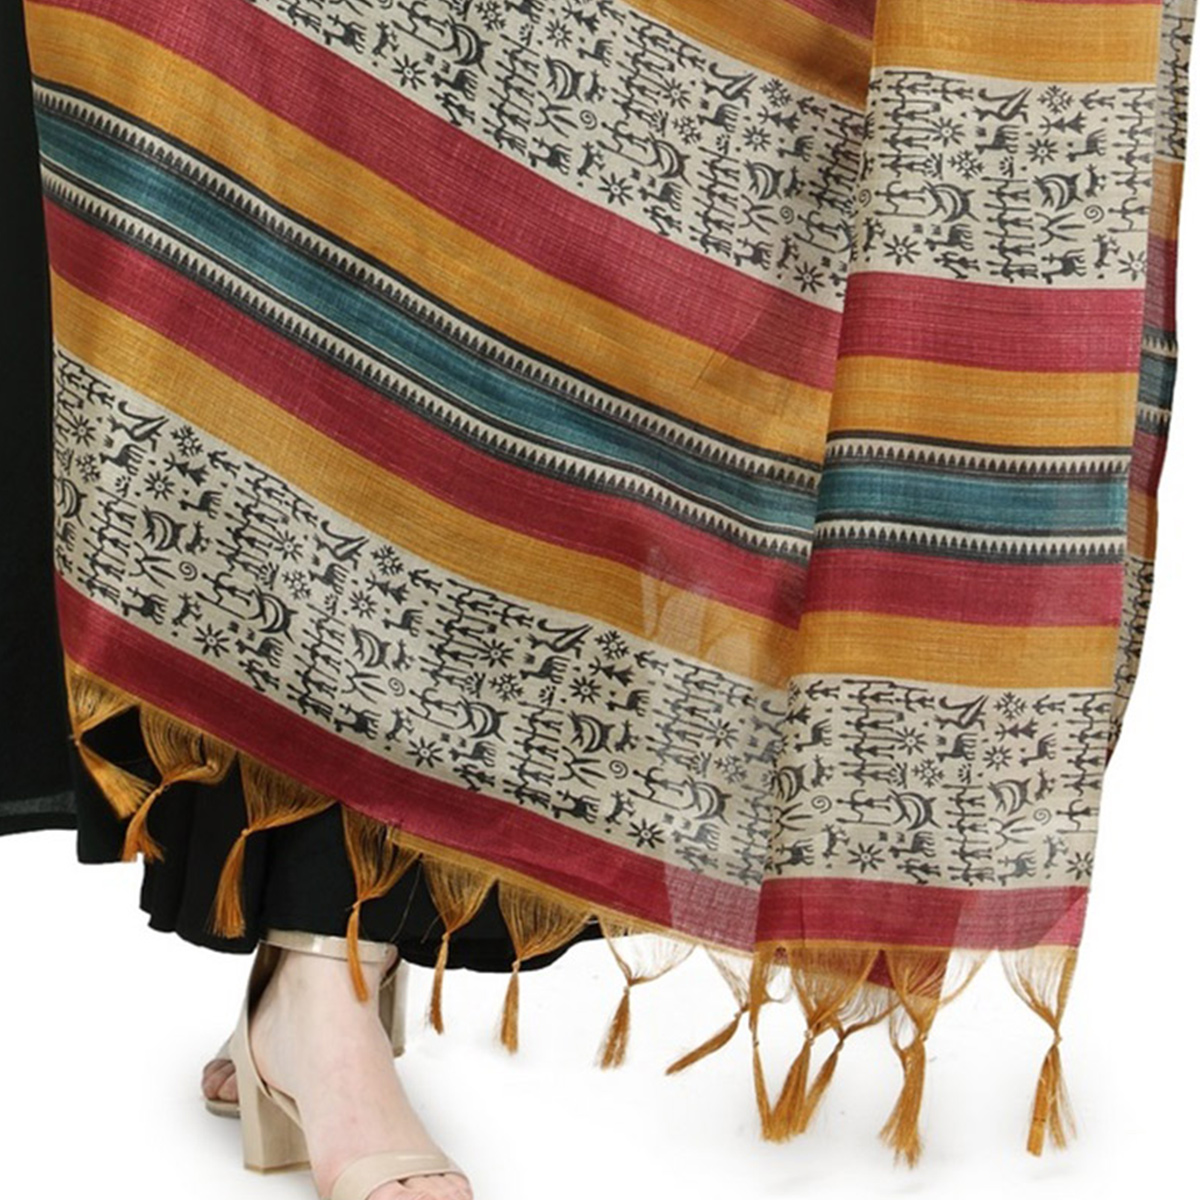 Yellow-Maroon Multi Colored Striped Warli Print Khadi Silk Dupatta